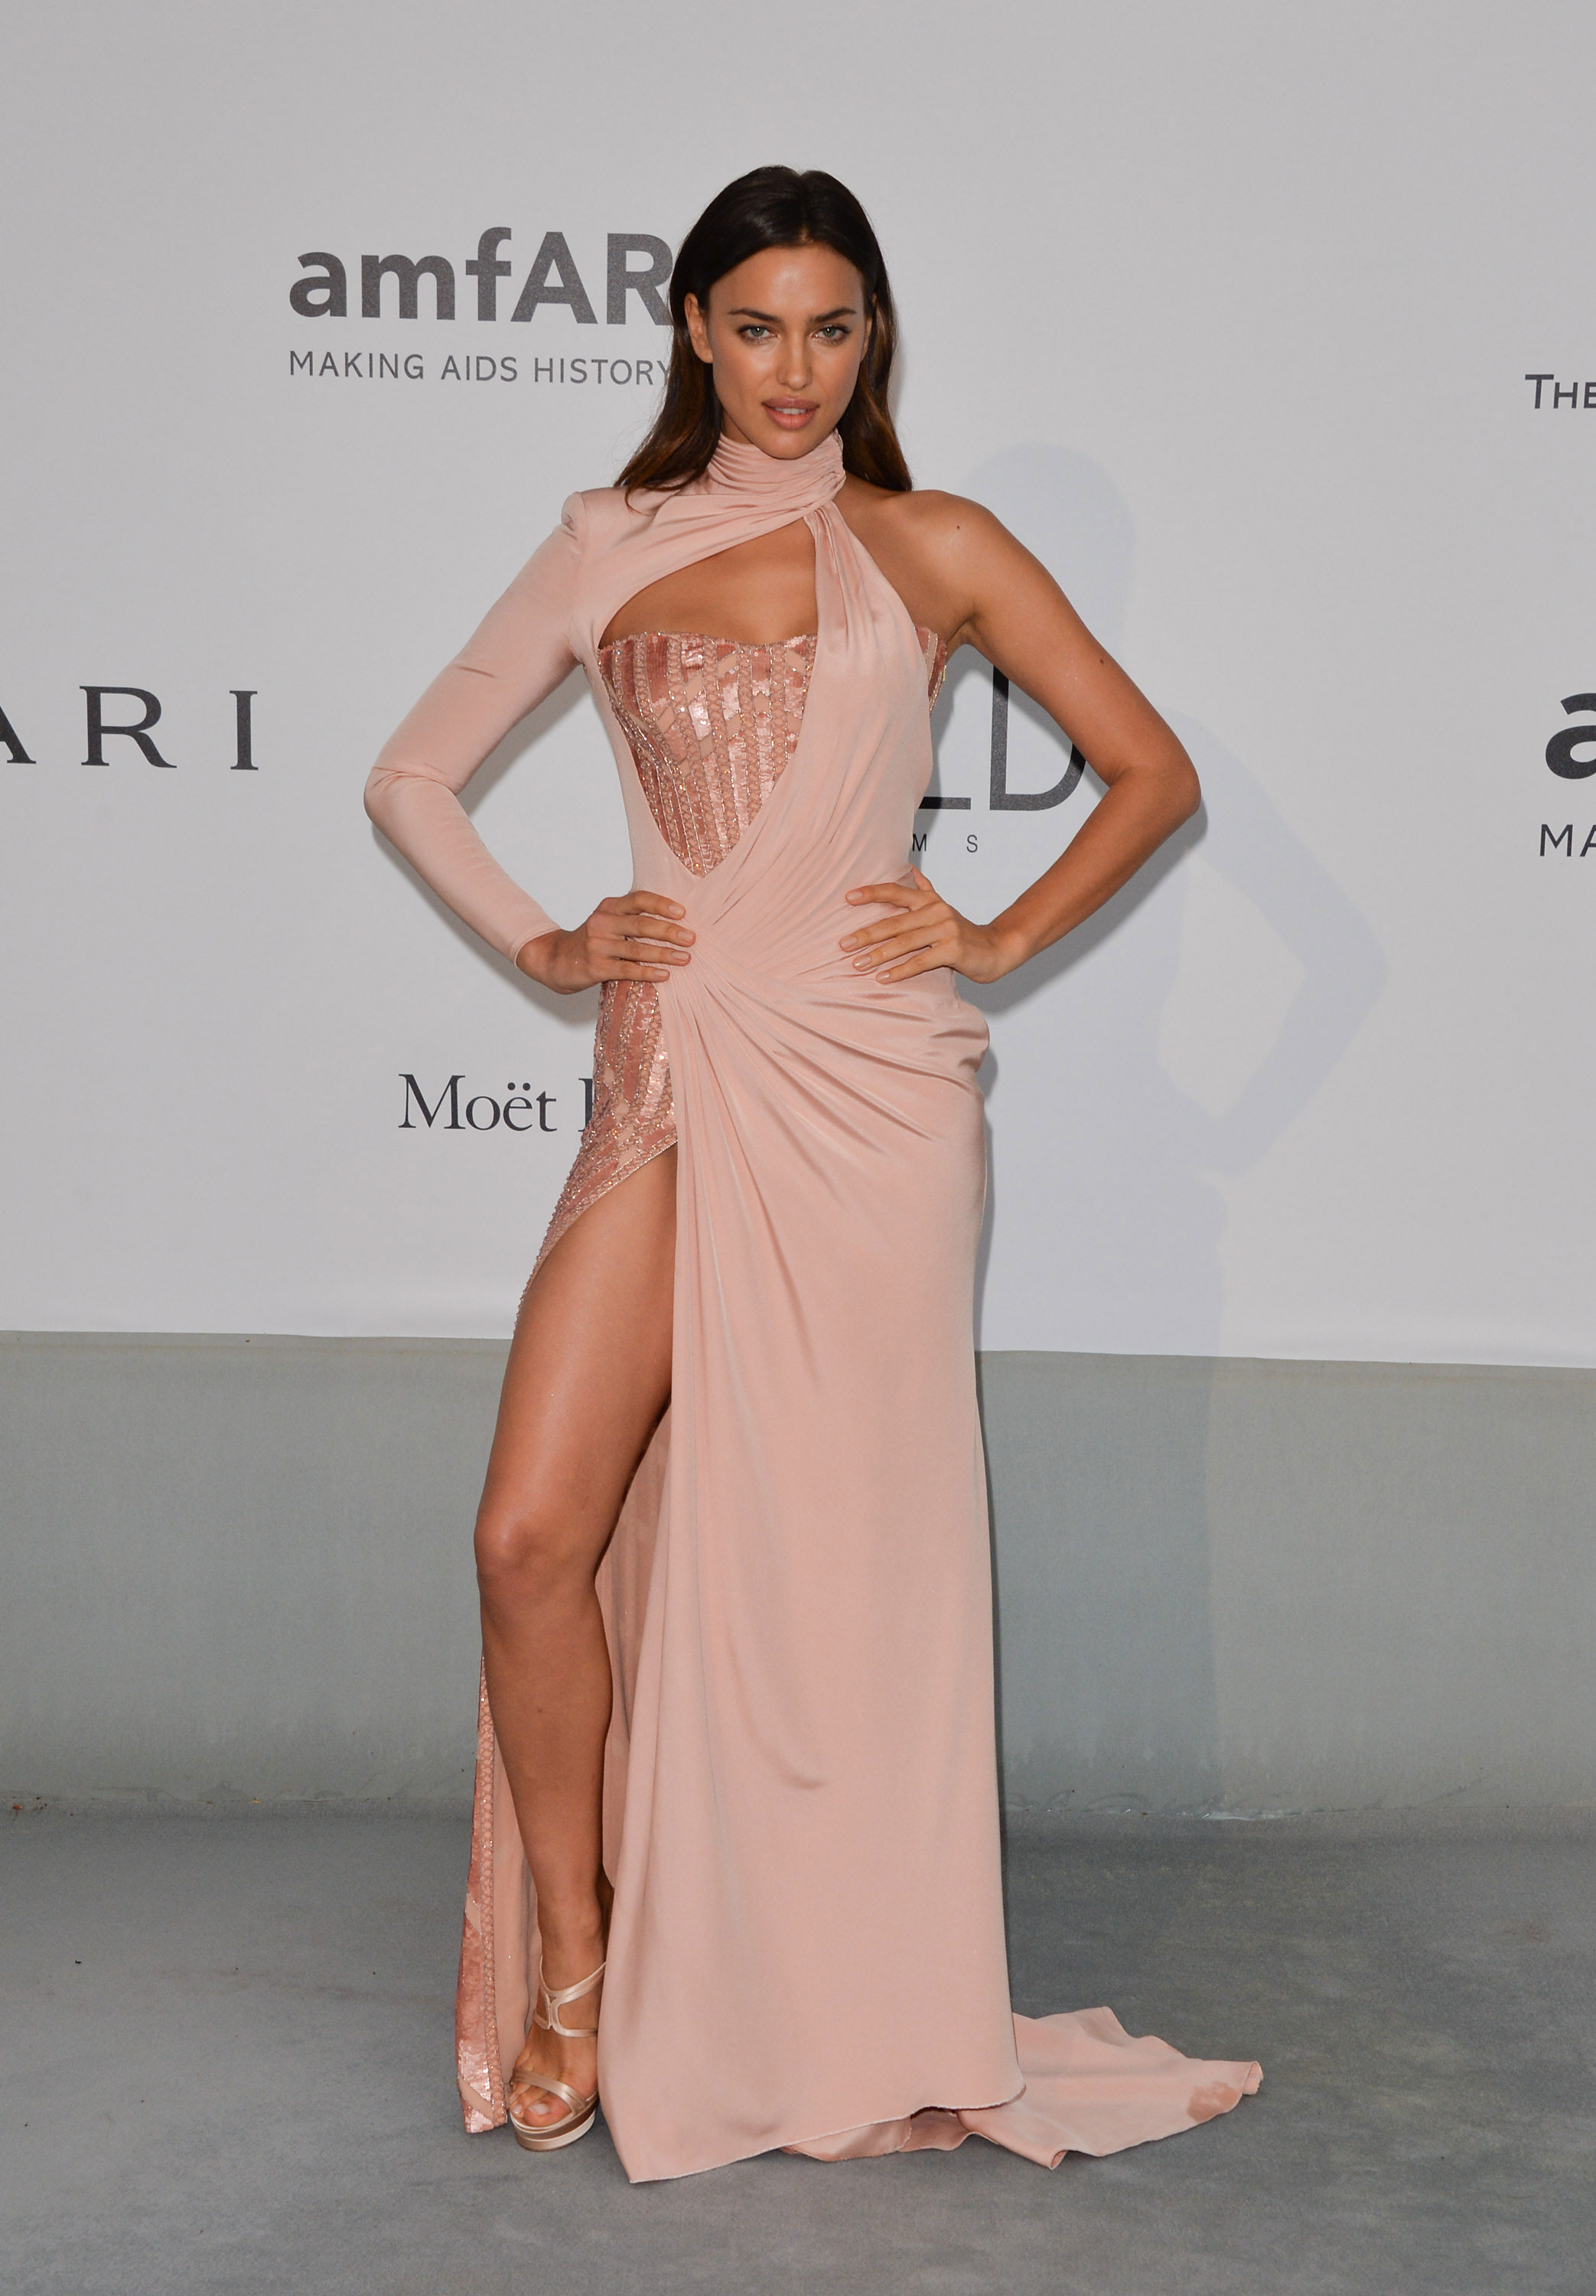 Irina Shayk attends amfAR's 21st Cinema Against AIDS Gala at the 67th Annual Cannes Film Festival.